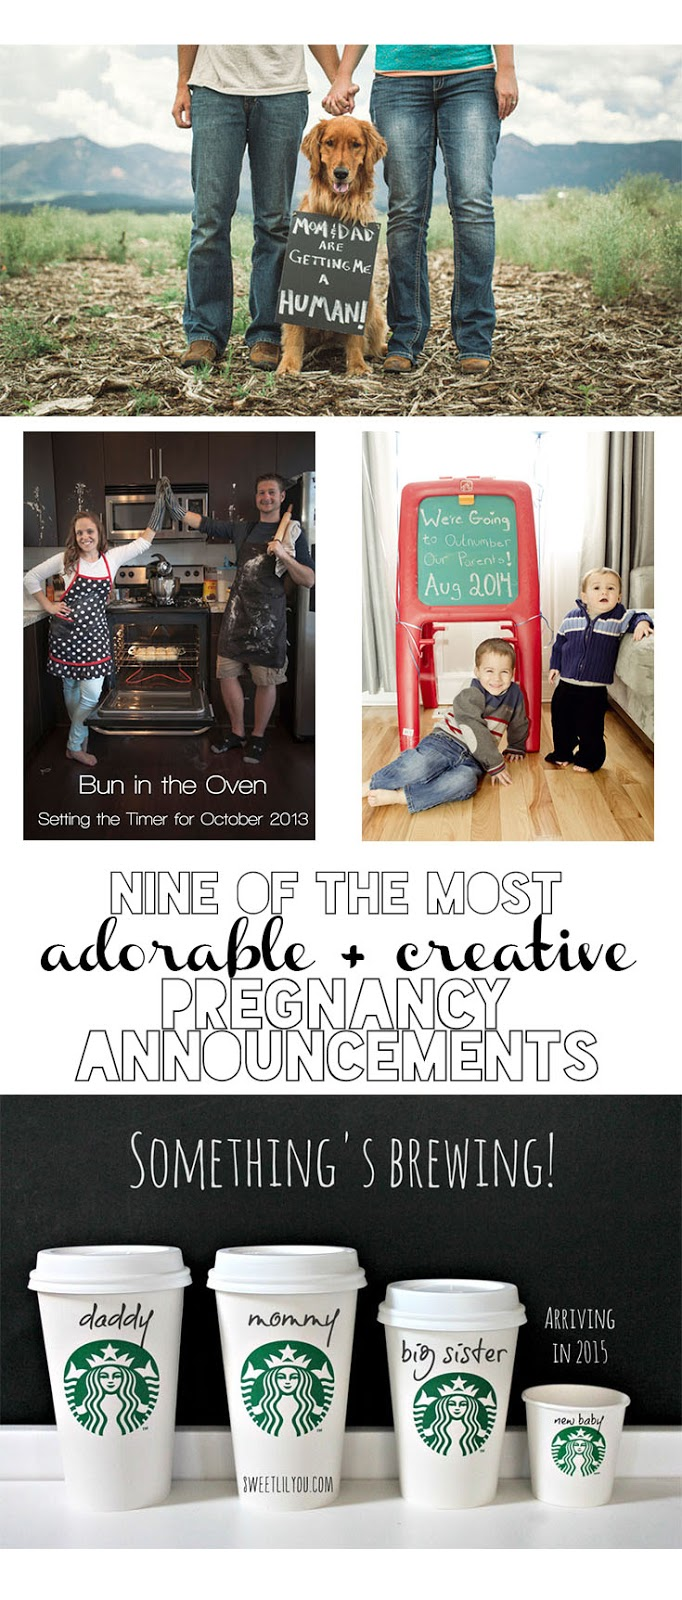 Check out these 9 amazing ways to announce you're with child, from magazine covers to personalized eggs, there are so many creative ways to share your exciting news with the world...